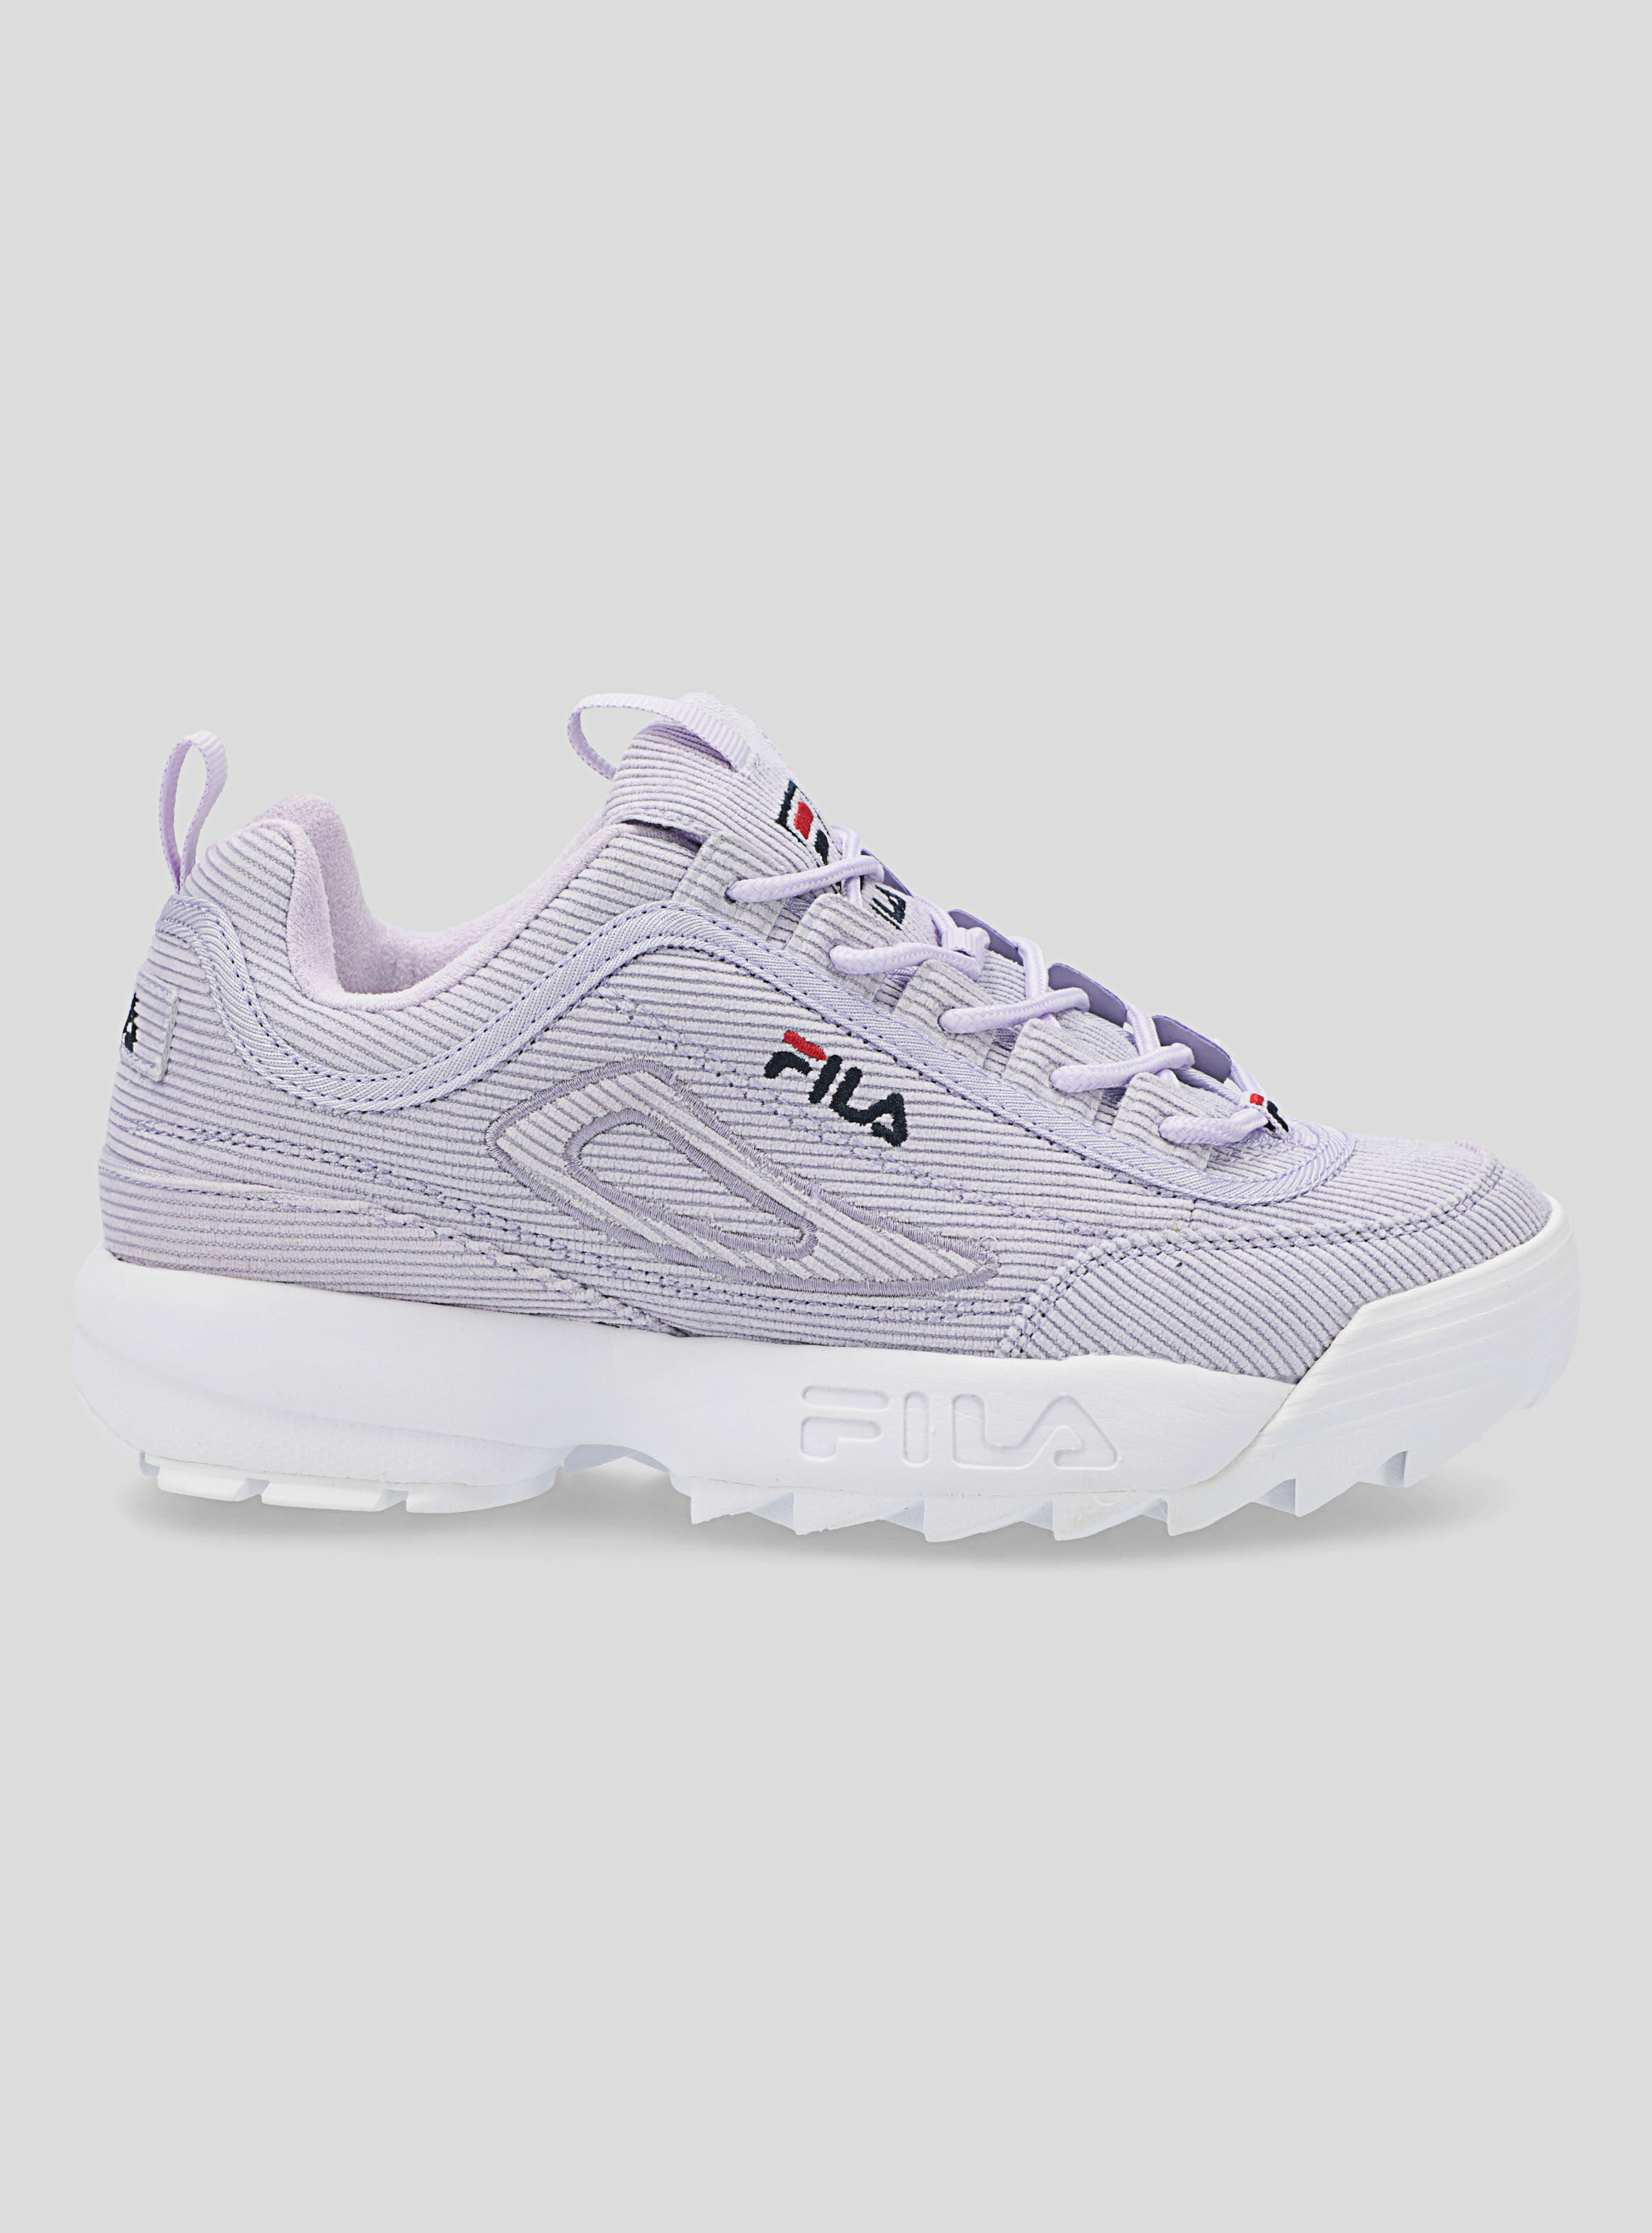 zapatillas fila | Paris.cl